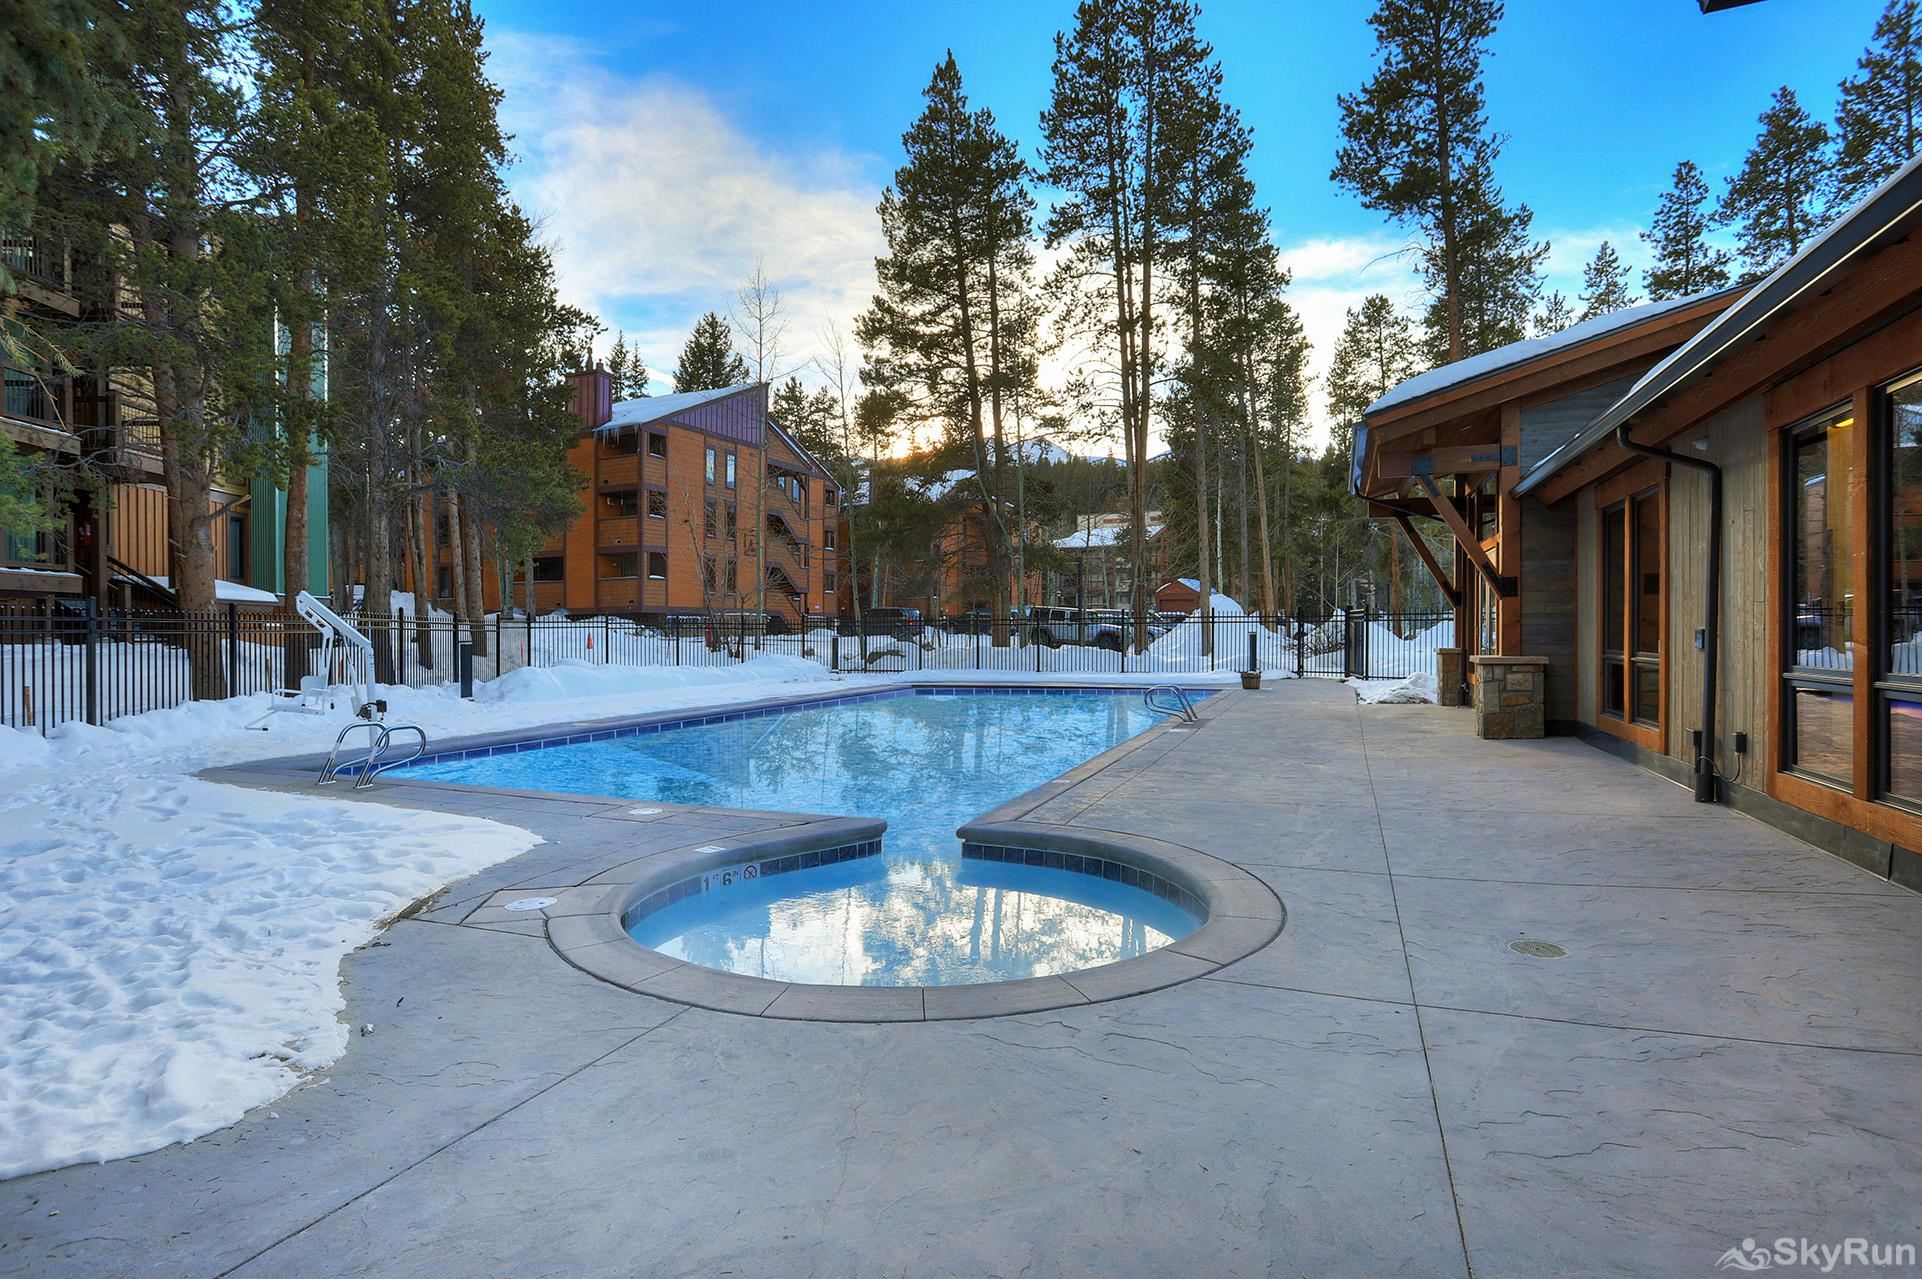 Lances West 13 Relax and unwind in the outdoor heated pool & hot tubs